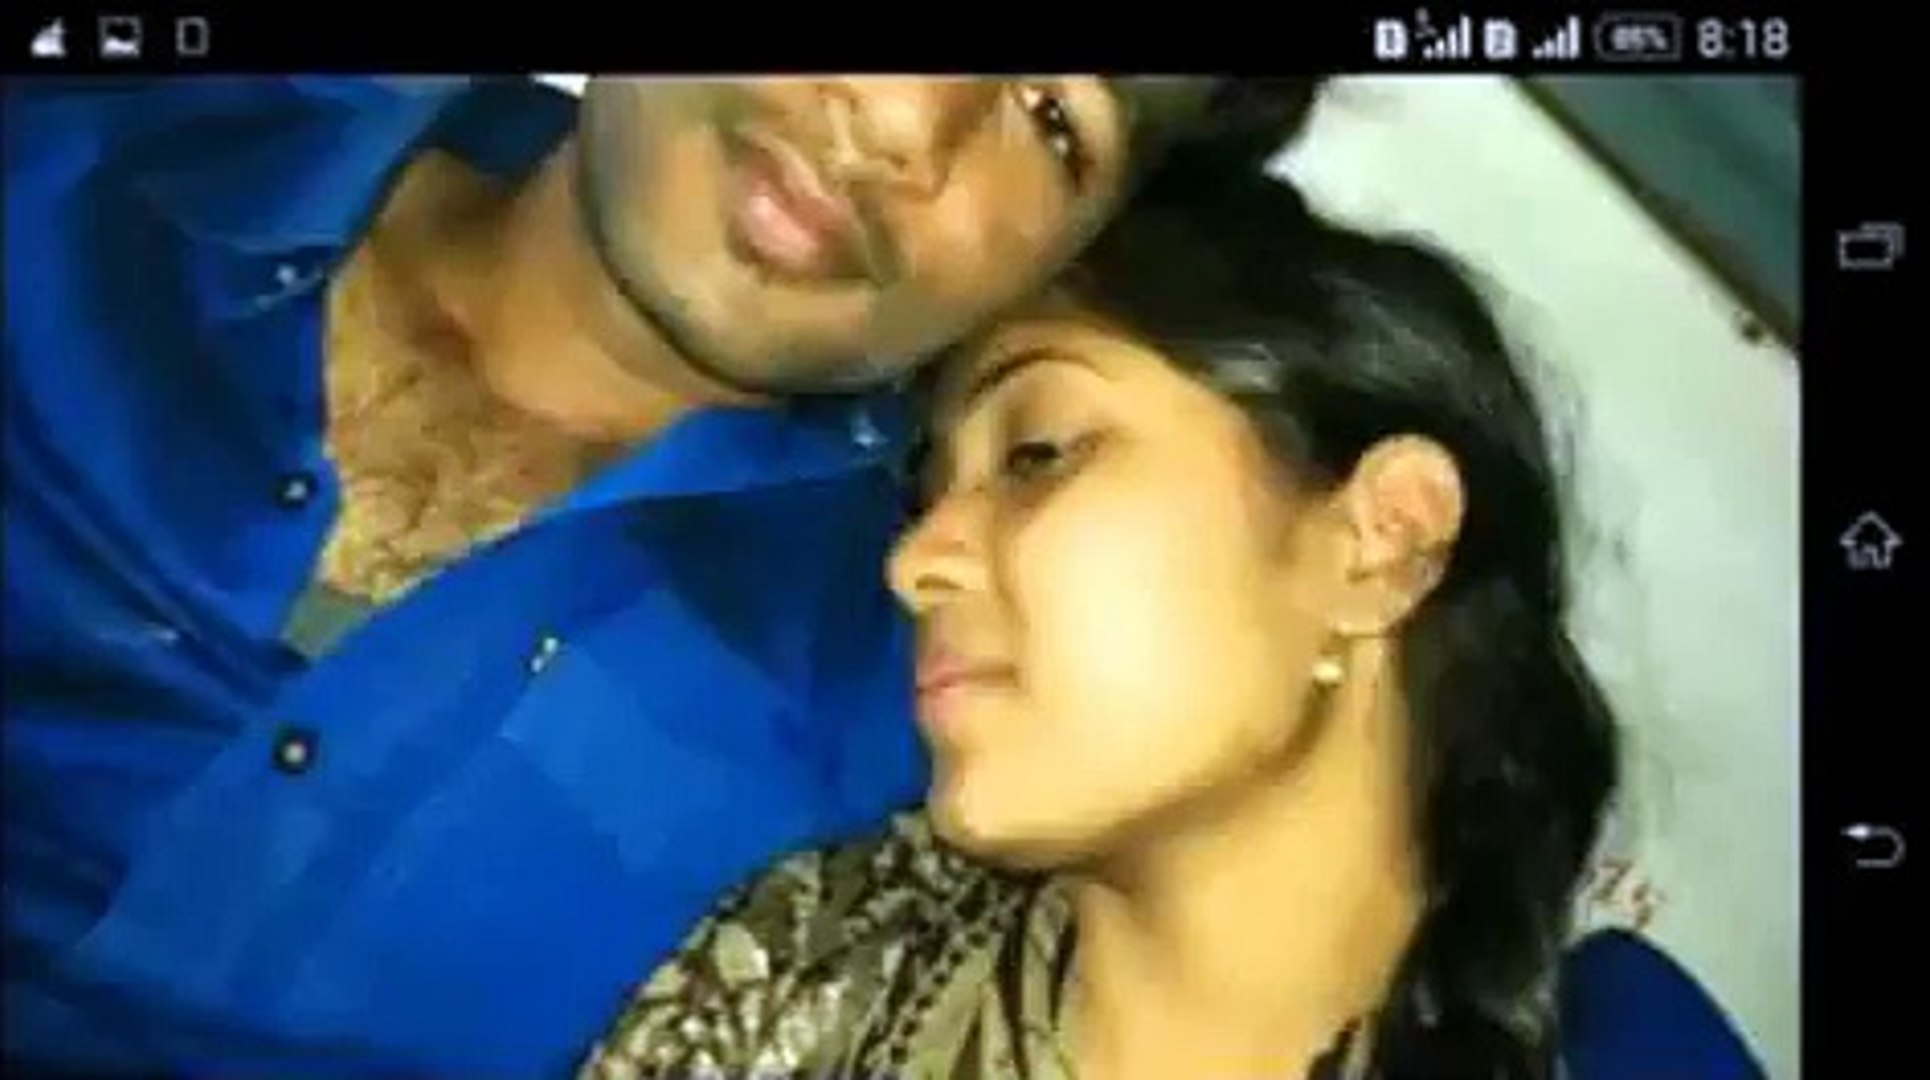 Trichy Girl Gowri phone audio talk love play between two boys - Part 1